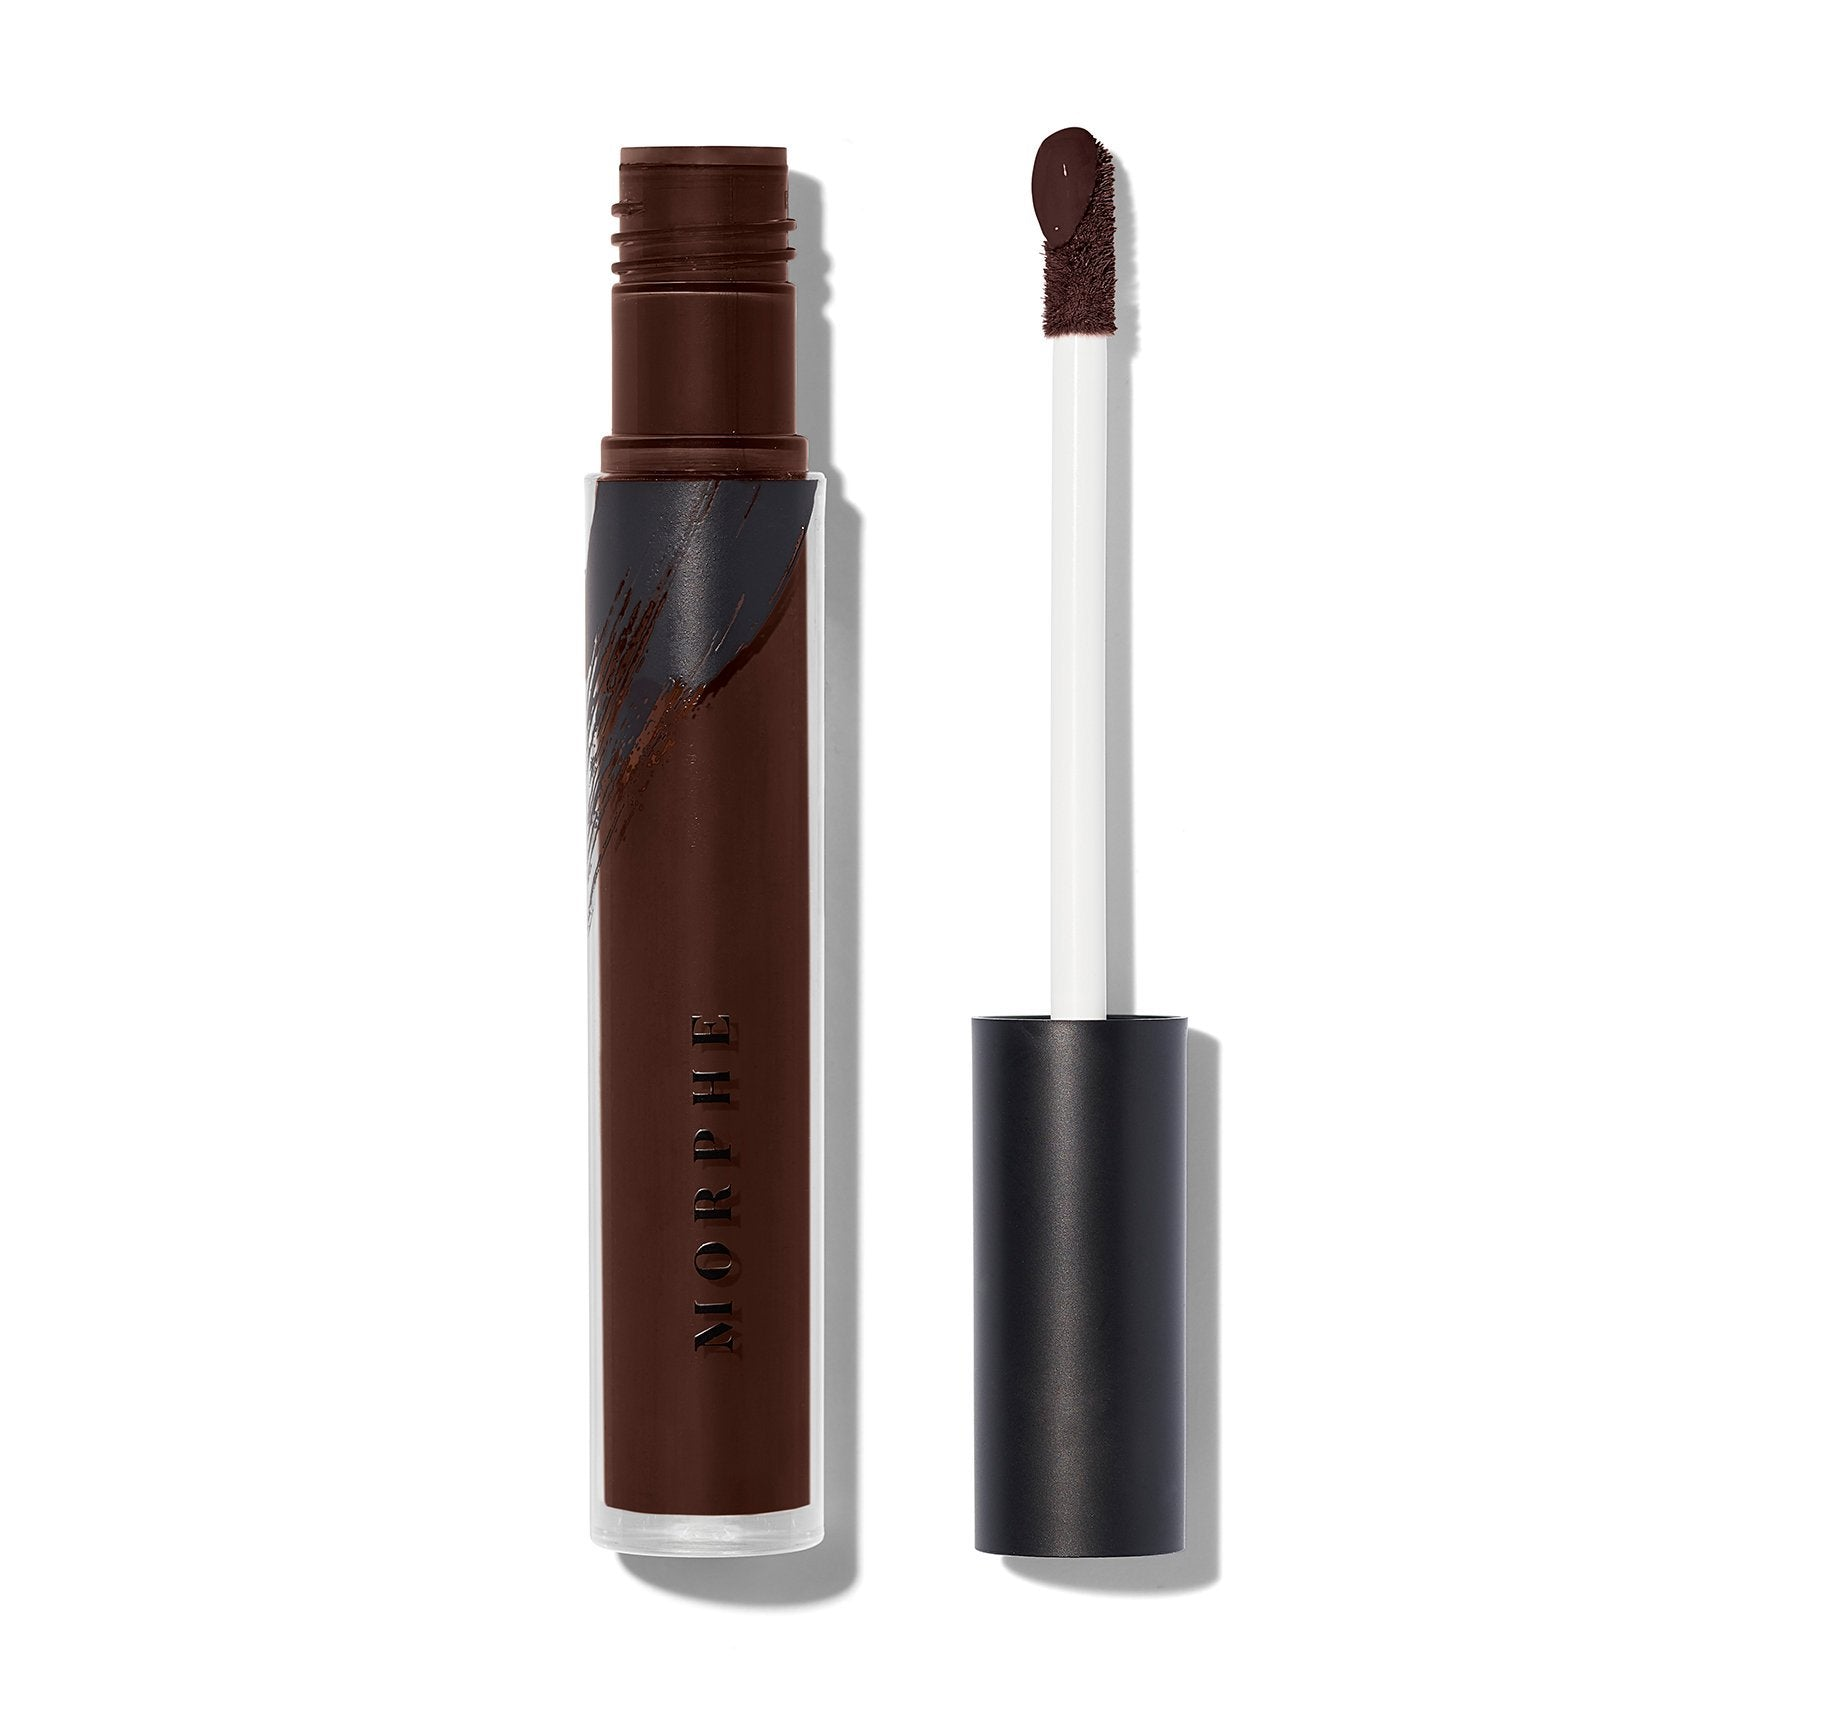 FLUIDITY FULL-COVERAGE CONCEALER - C5.65, view larger image